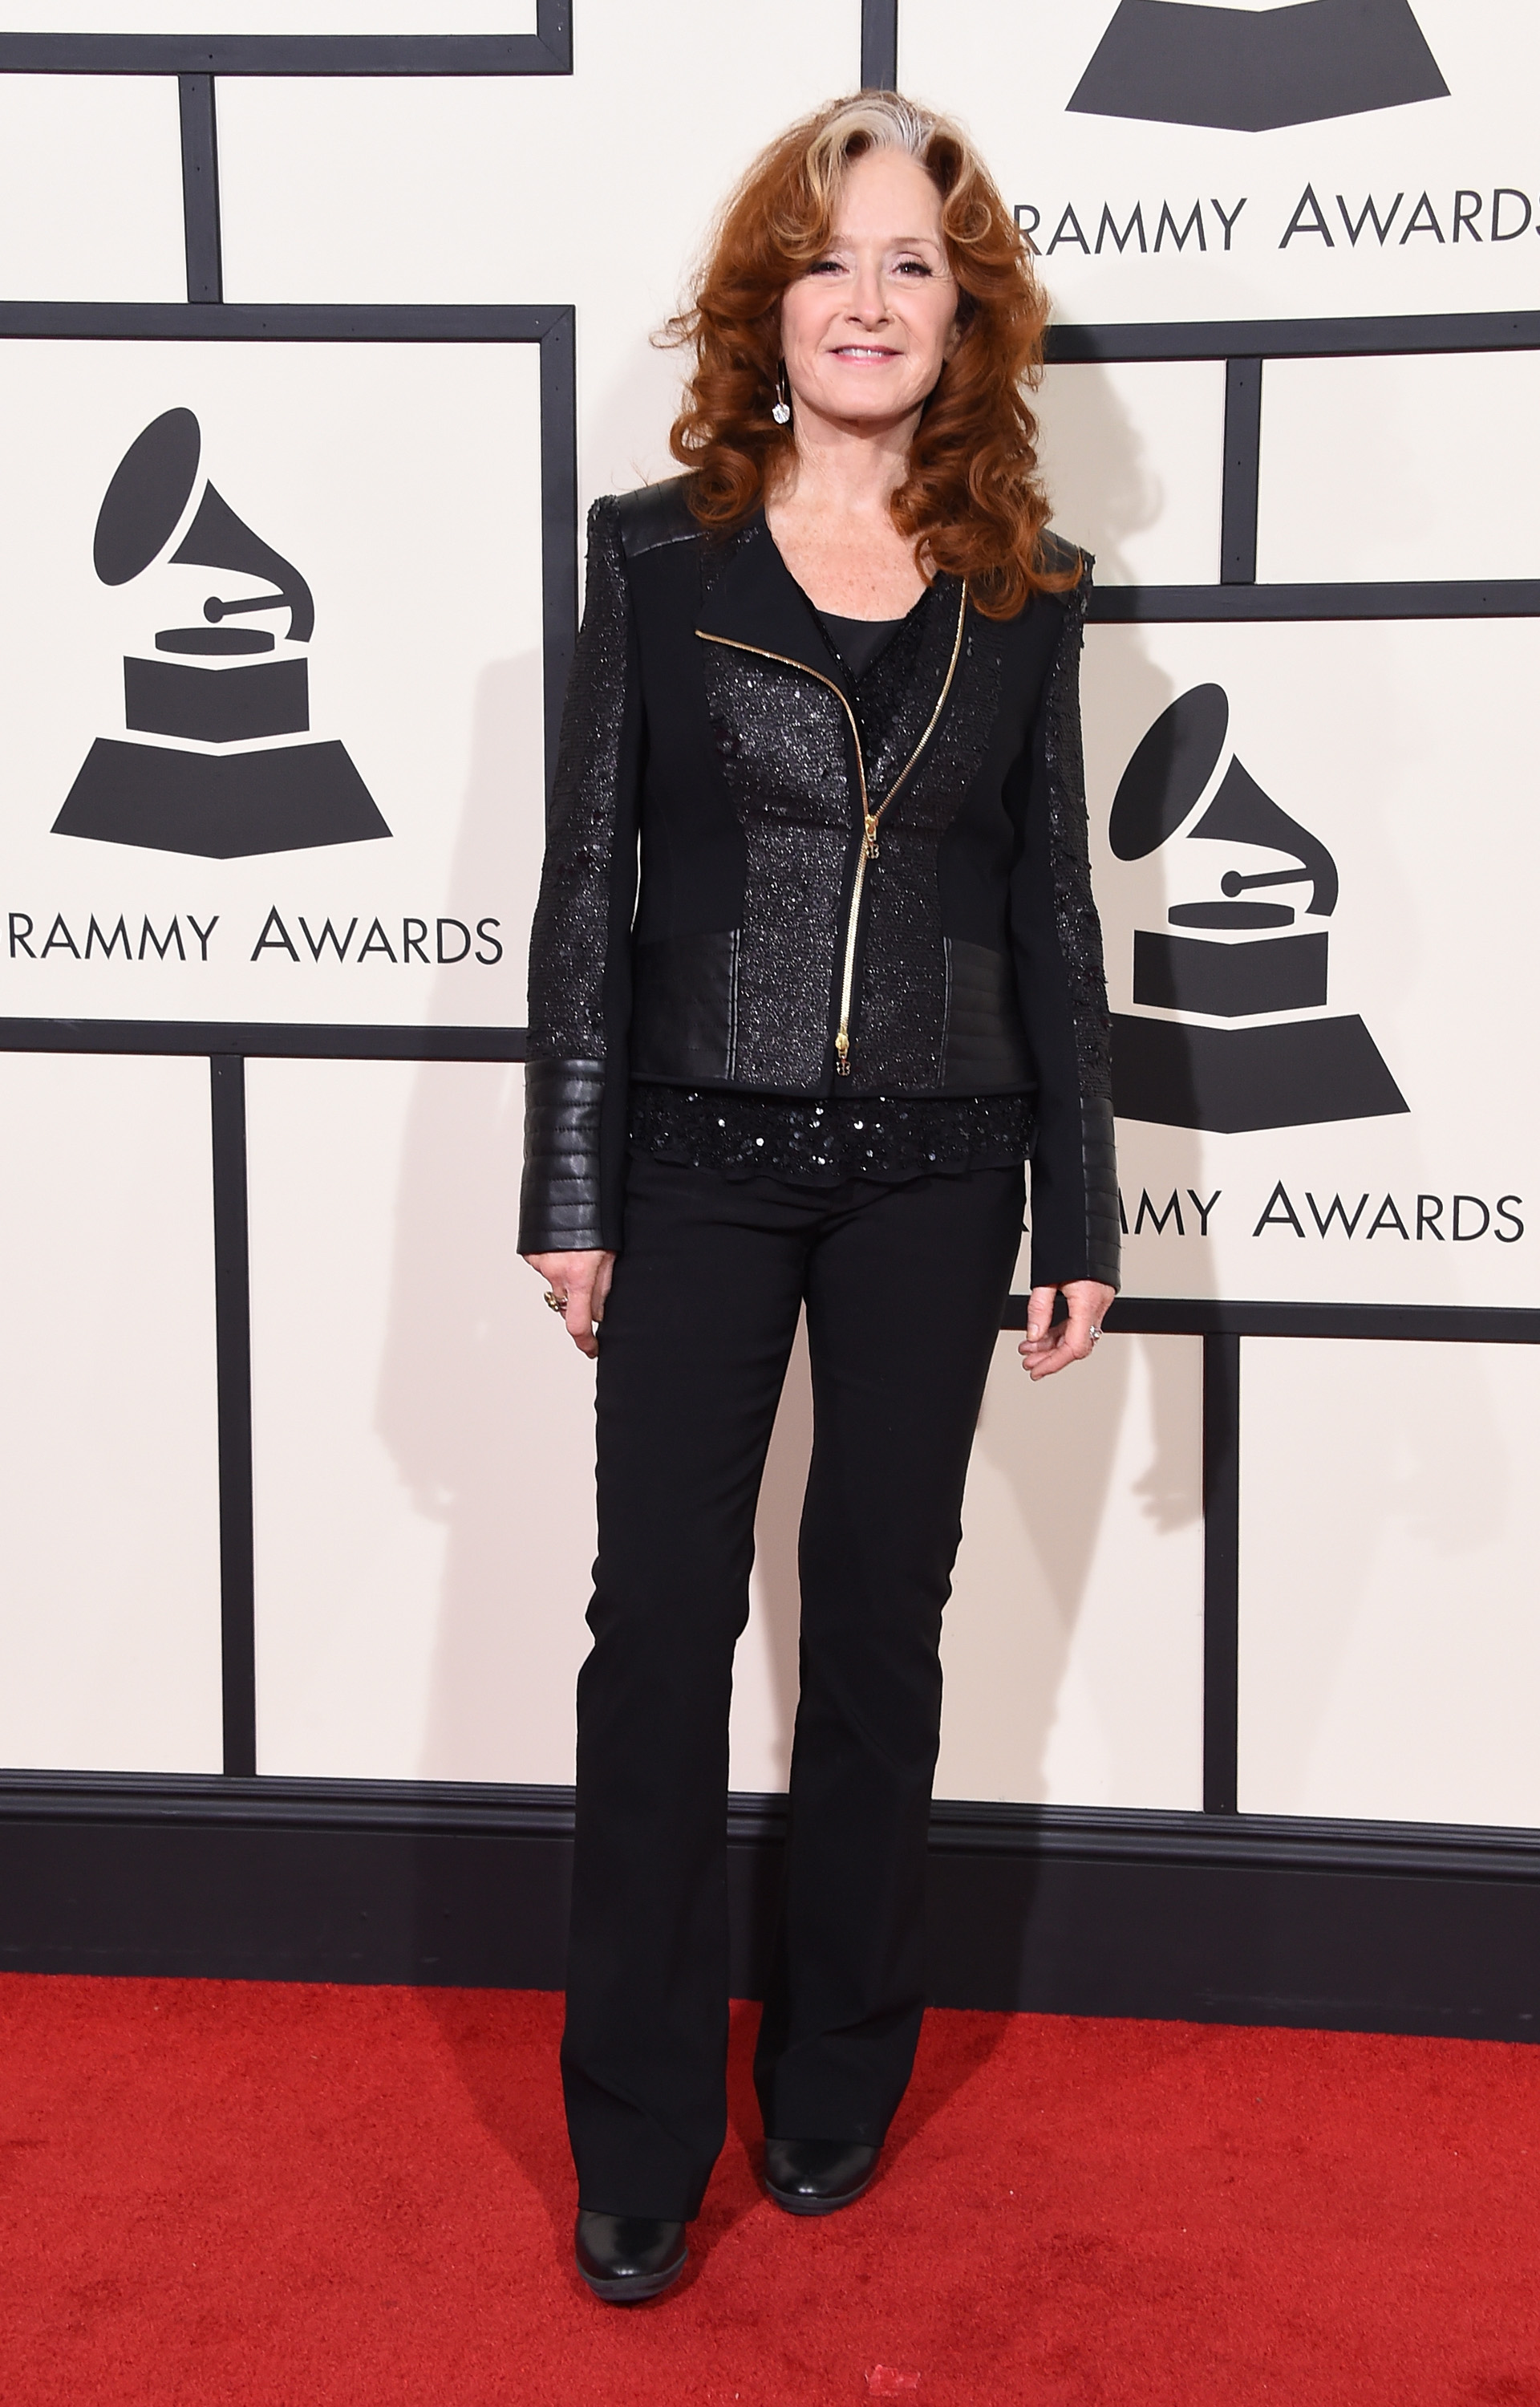 Bonnie Raitt attends the 58th GRAMMY Awards at Staples Center on Feb. 15, 2016 in Los Angeles.